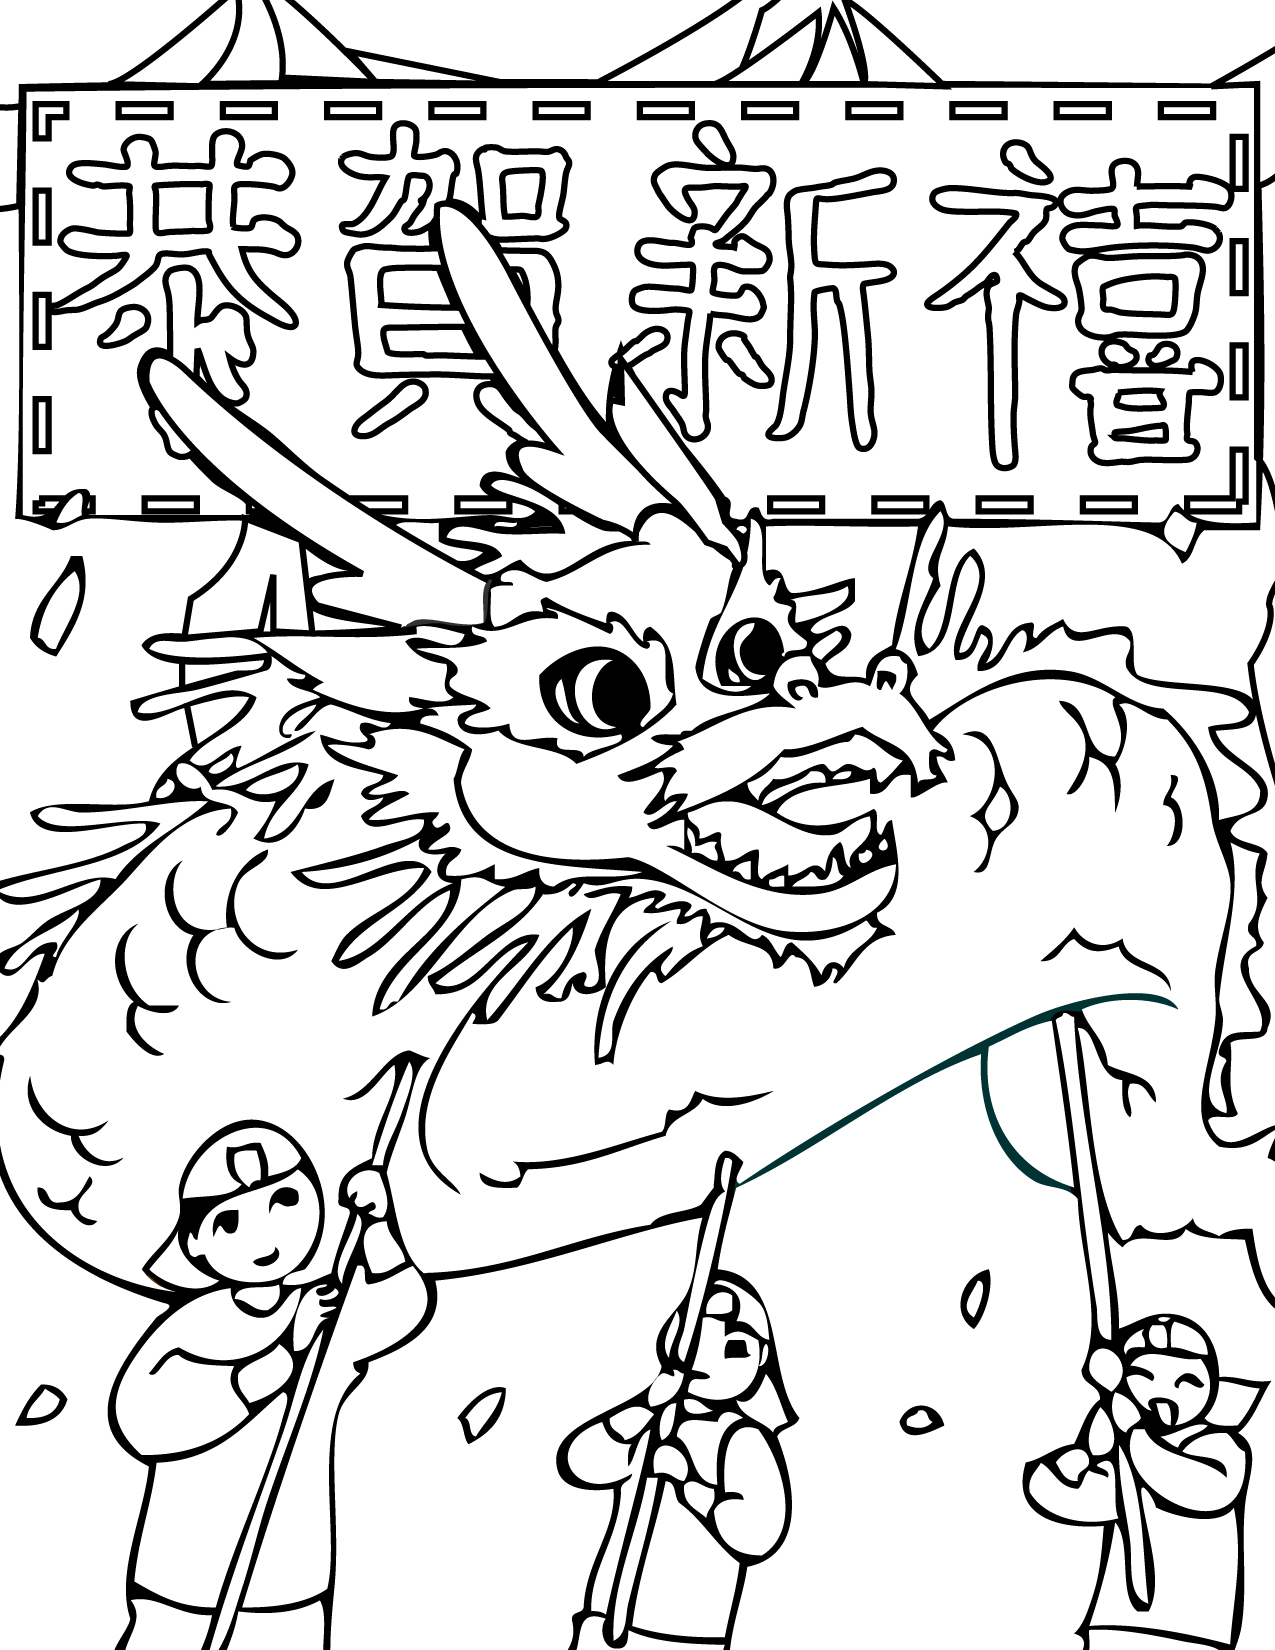 Coloring Pages For Chinese New Year : Chinese new year coloring pages